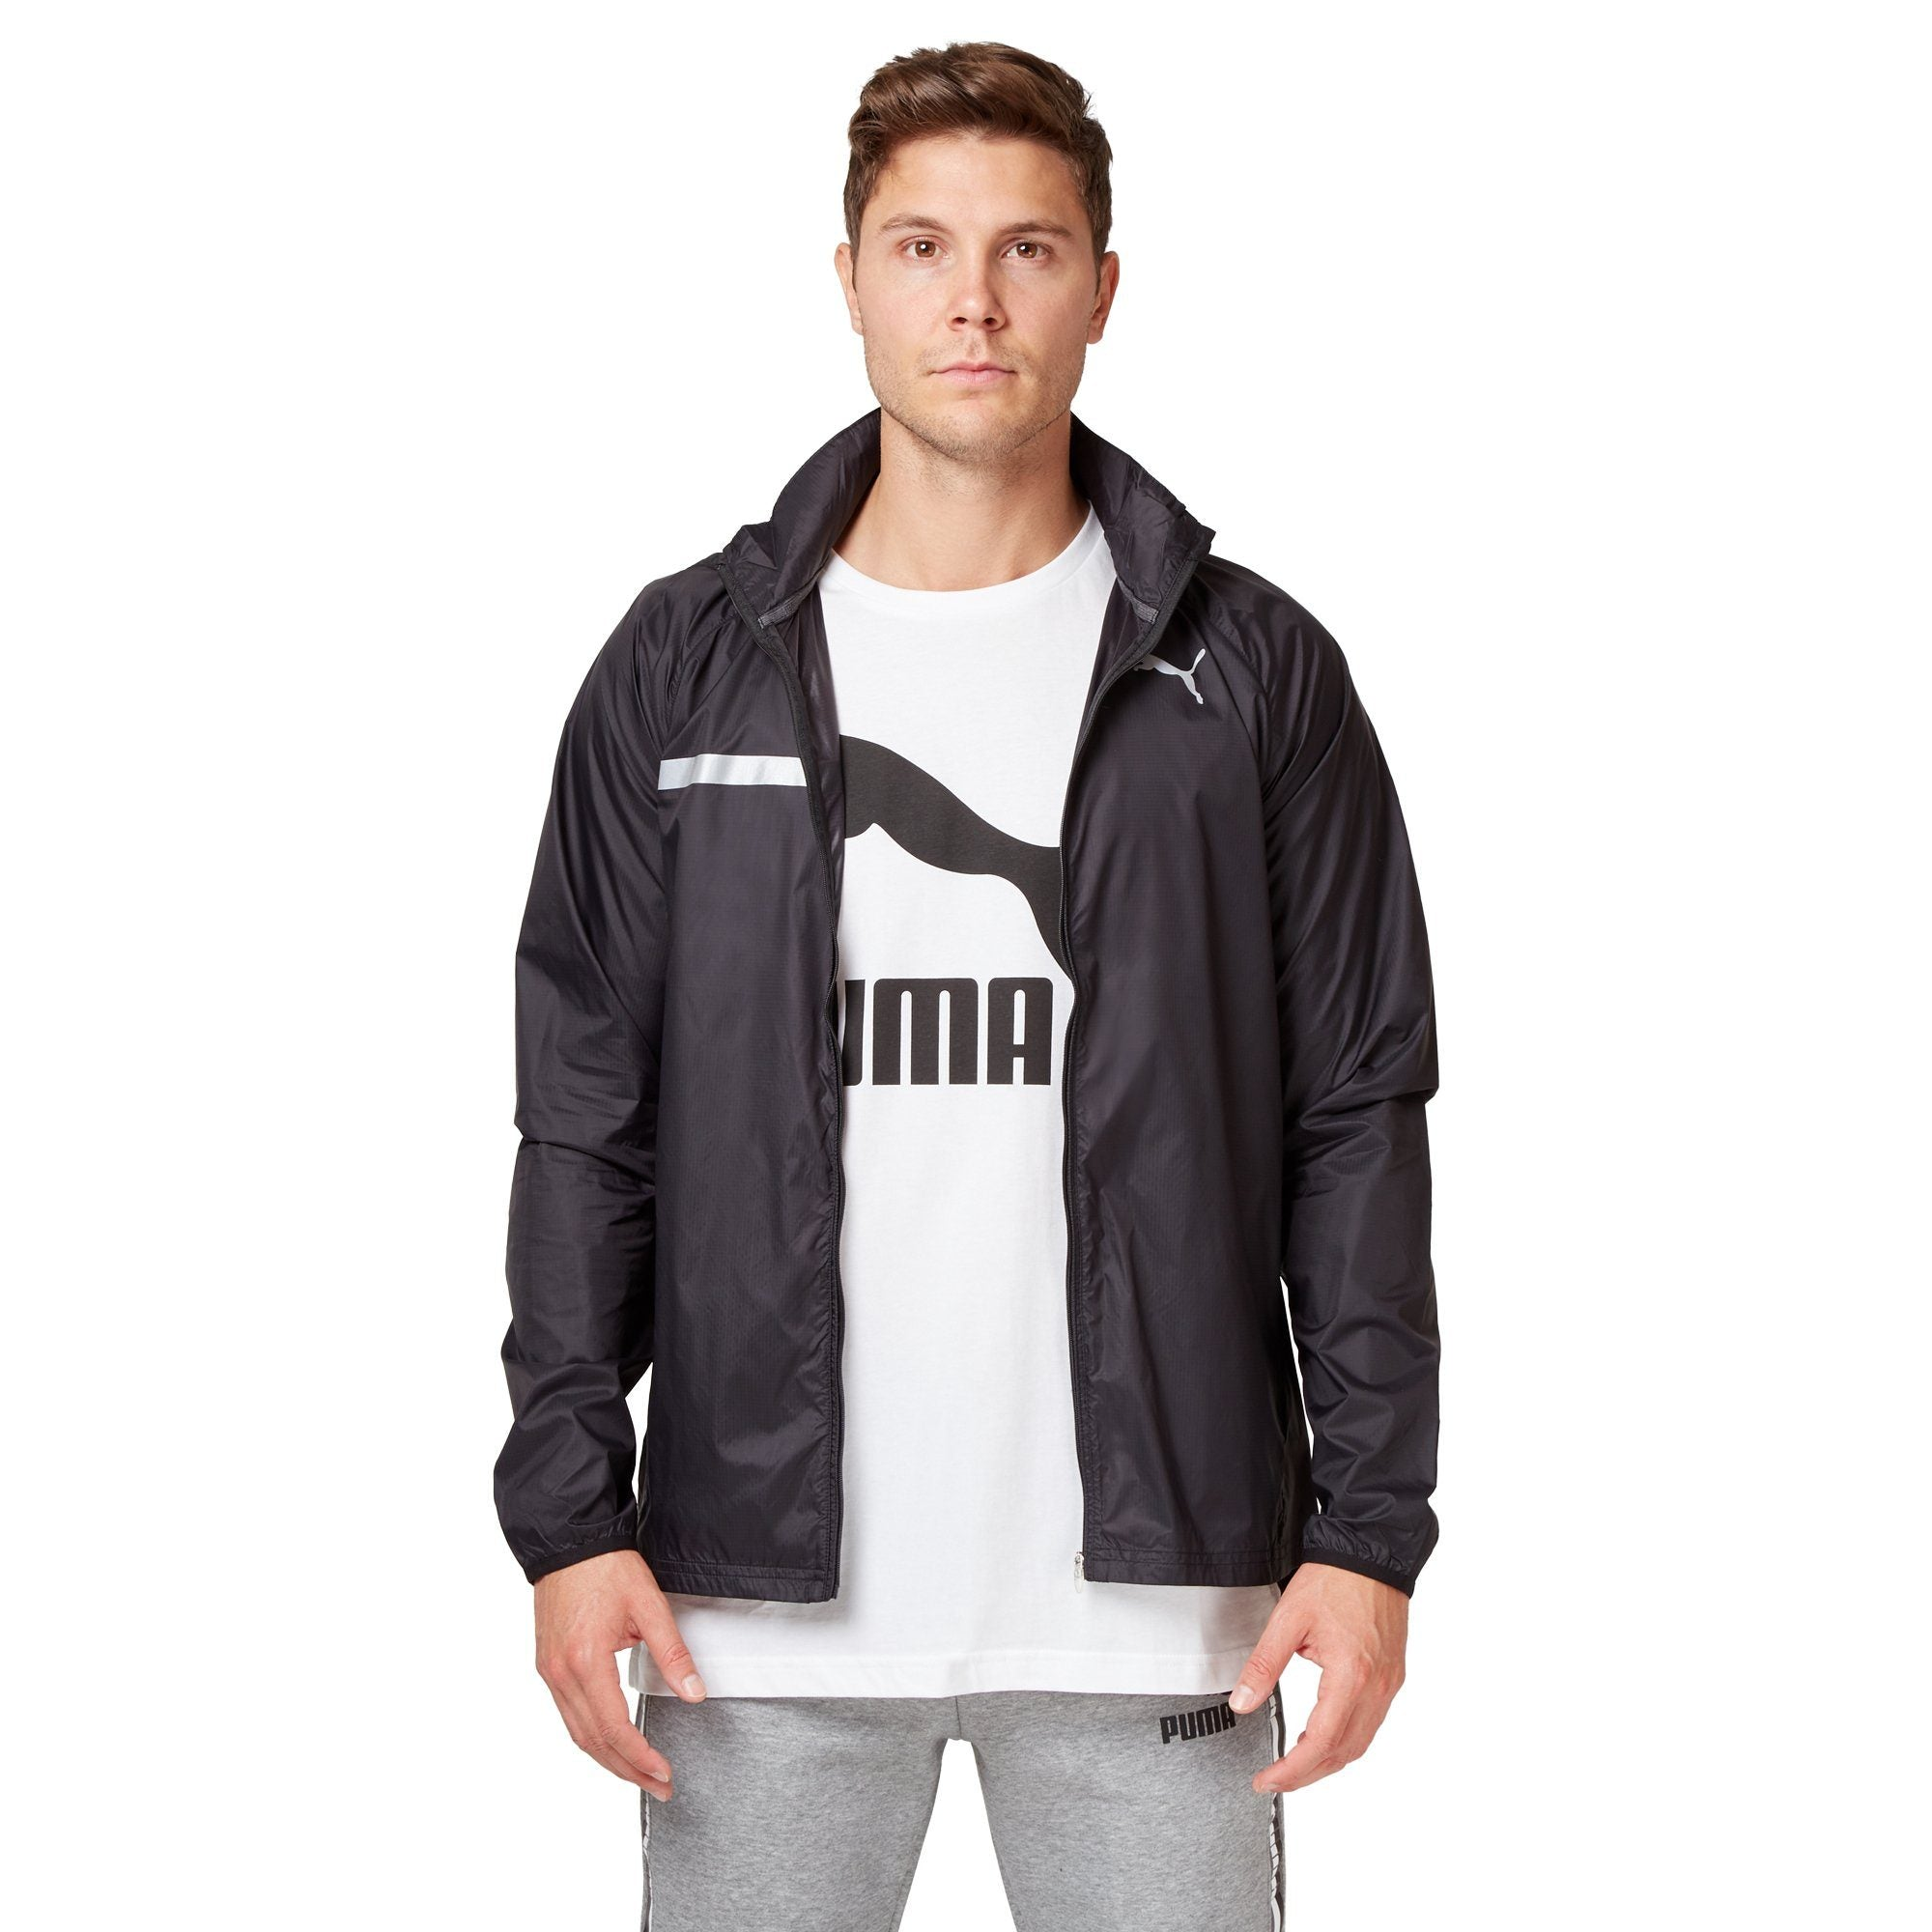 Puma Men's Lightweight Hooded Jacket - Black Apparel Puma  (2122604904507)